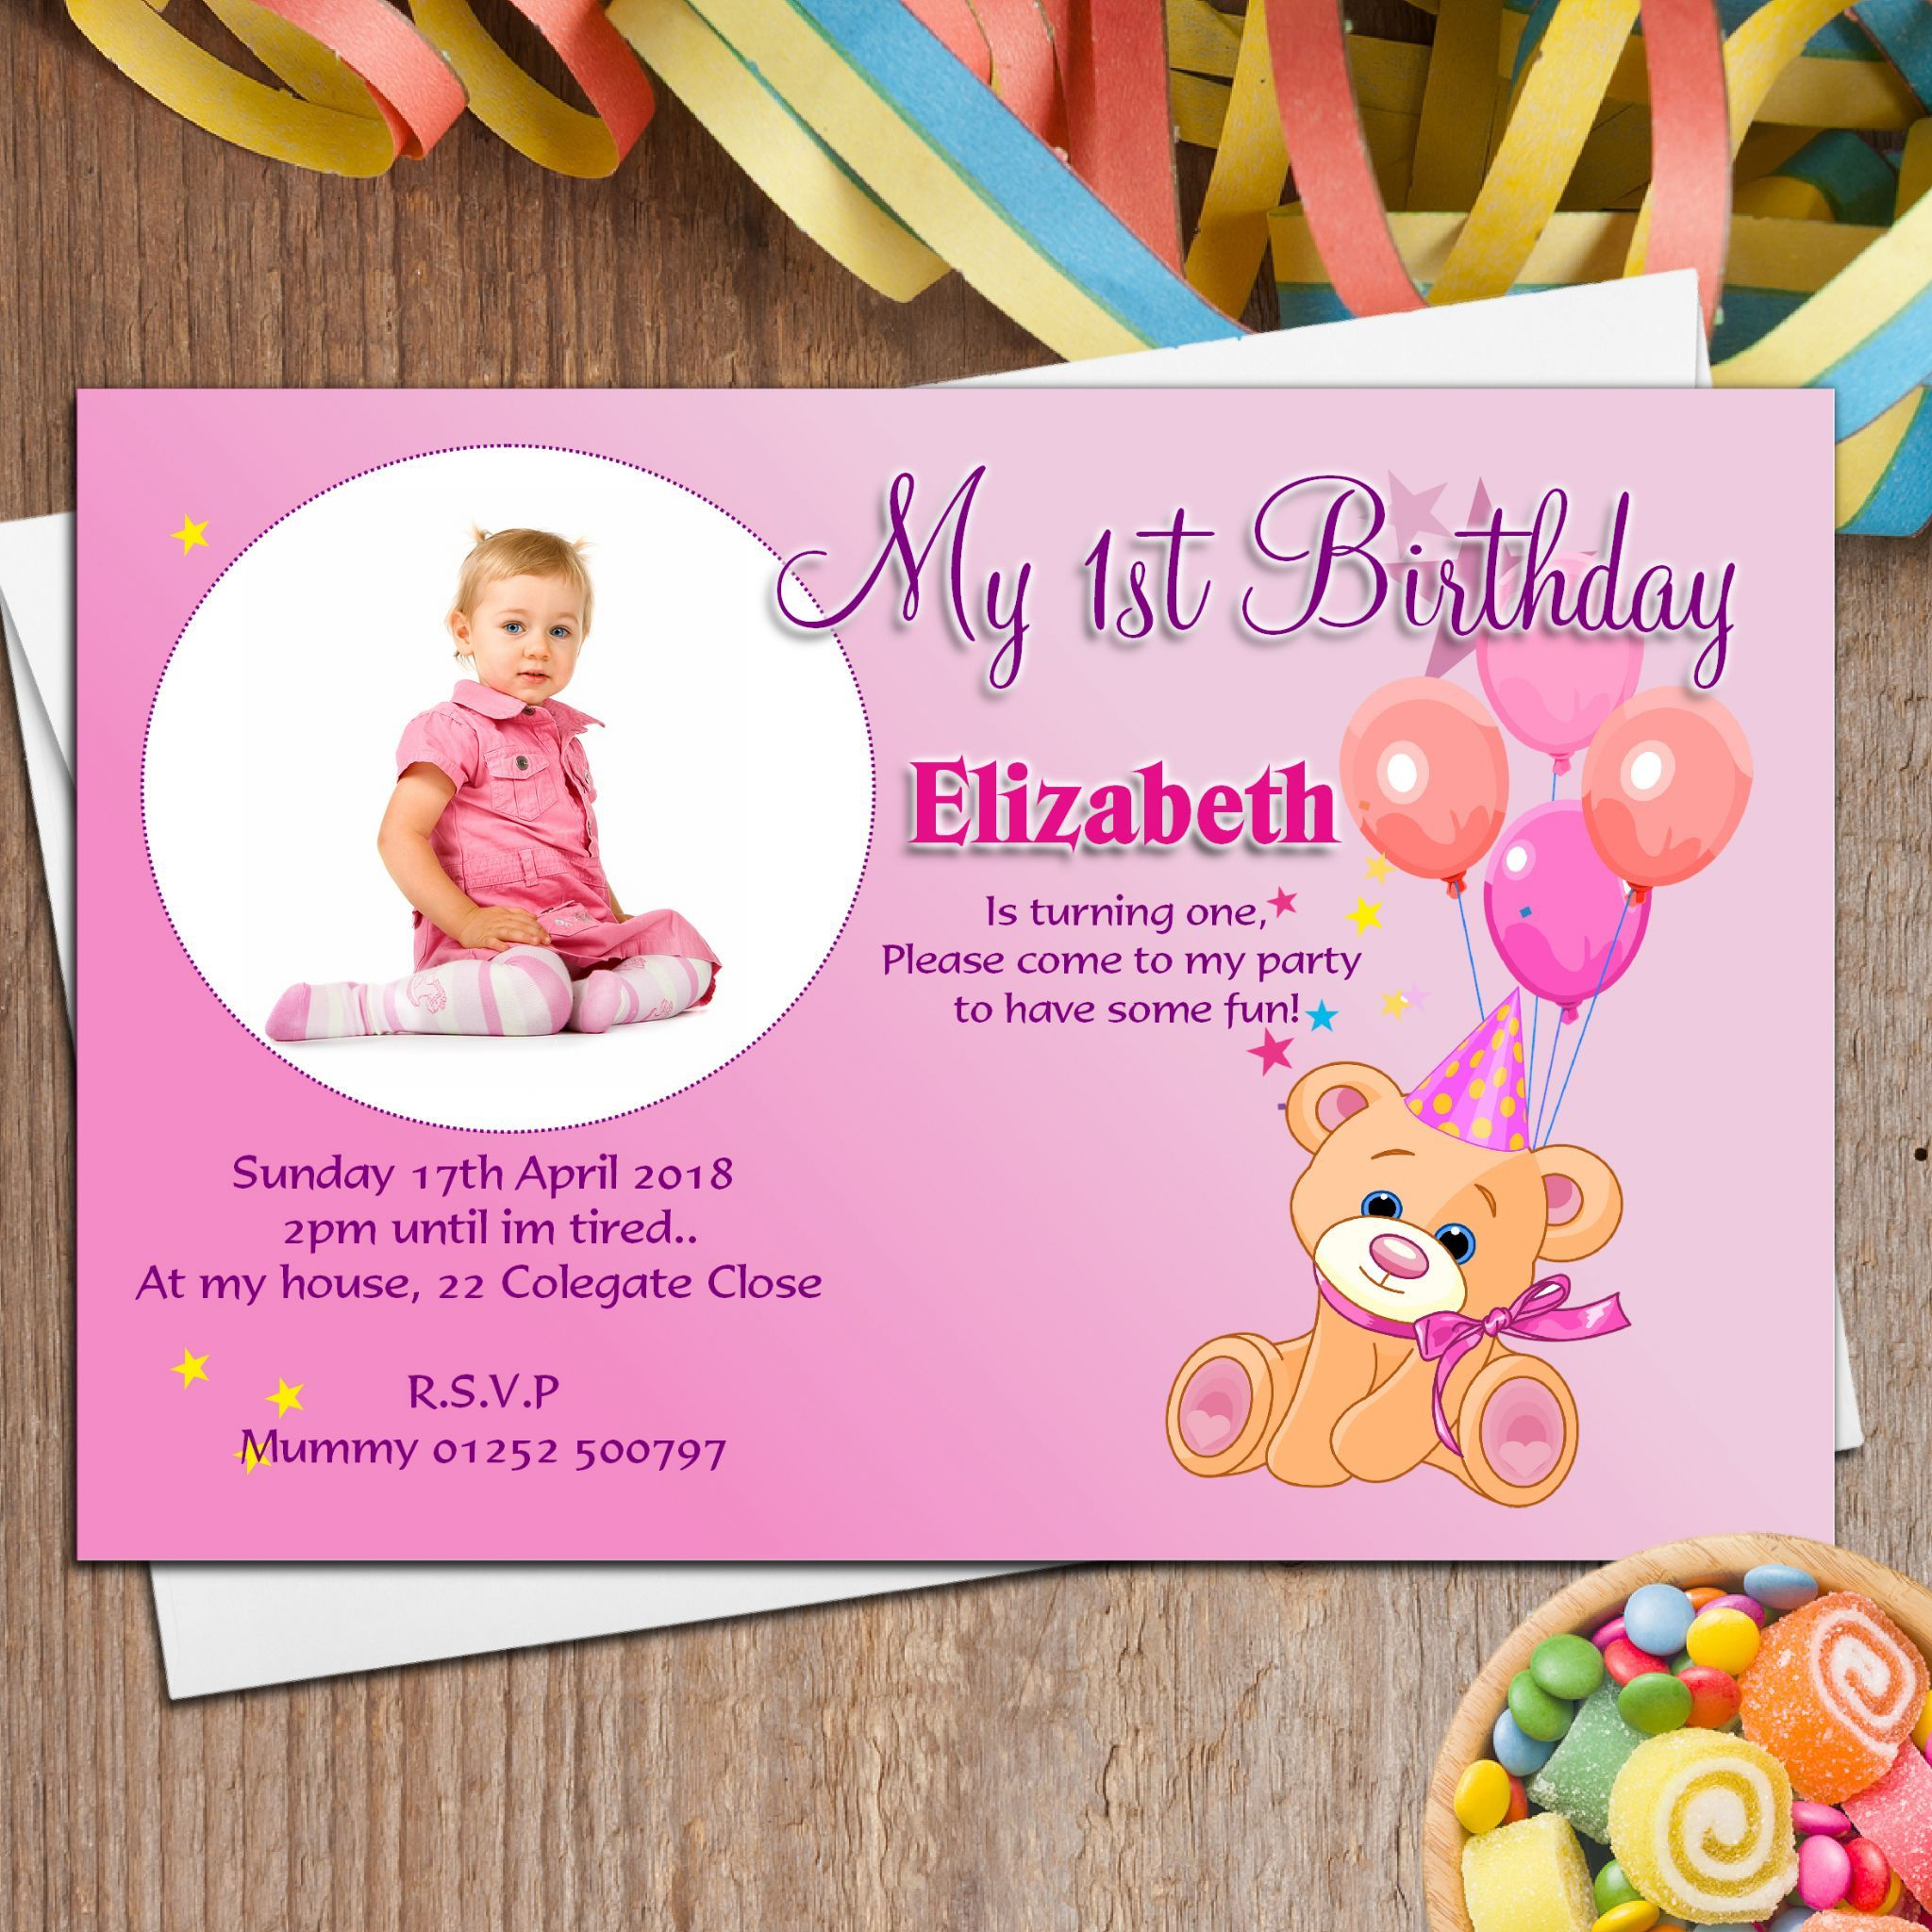 St Birthday Invitation Cards For Baby Boy In India Dnyaneshwar - First birthday invitation cards templates free